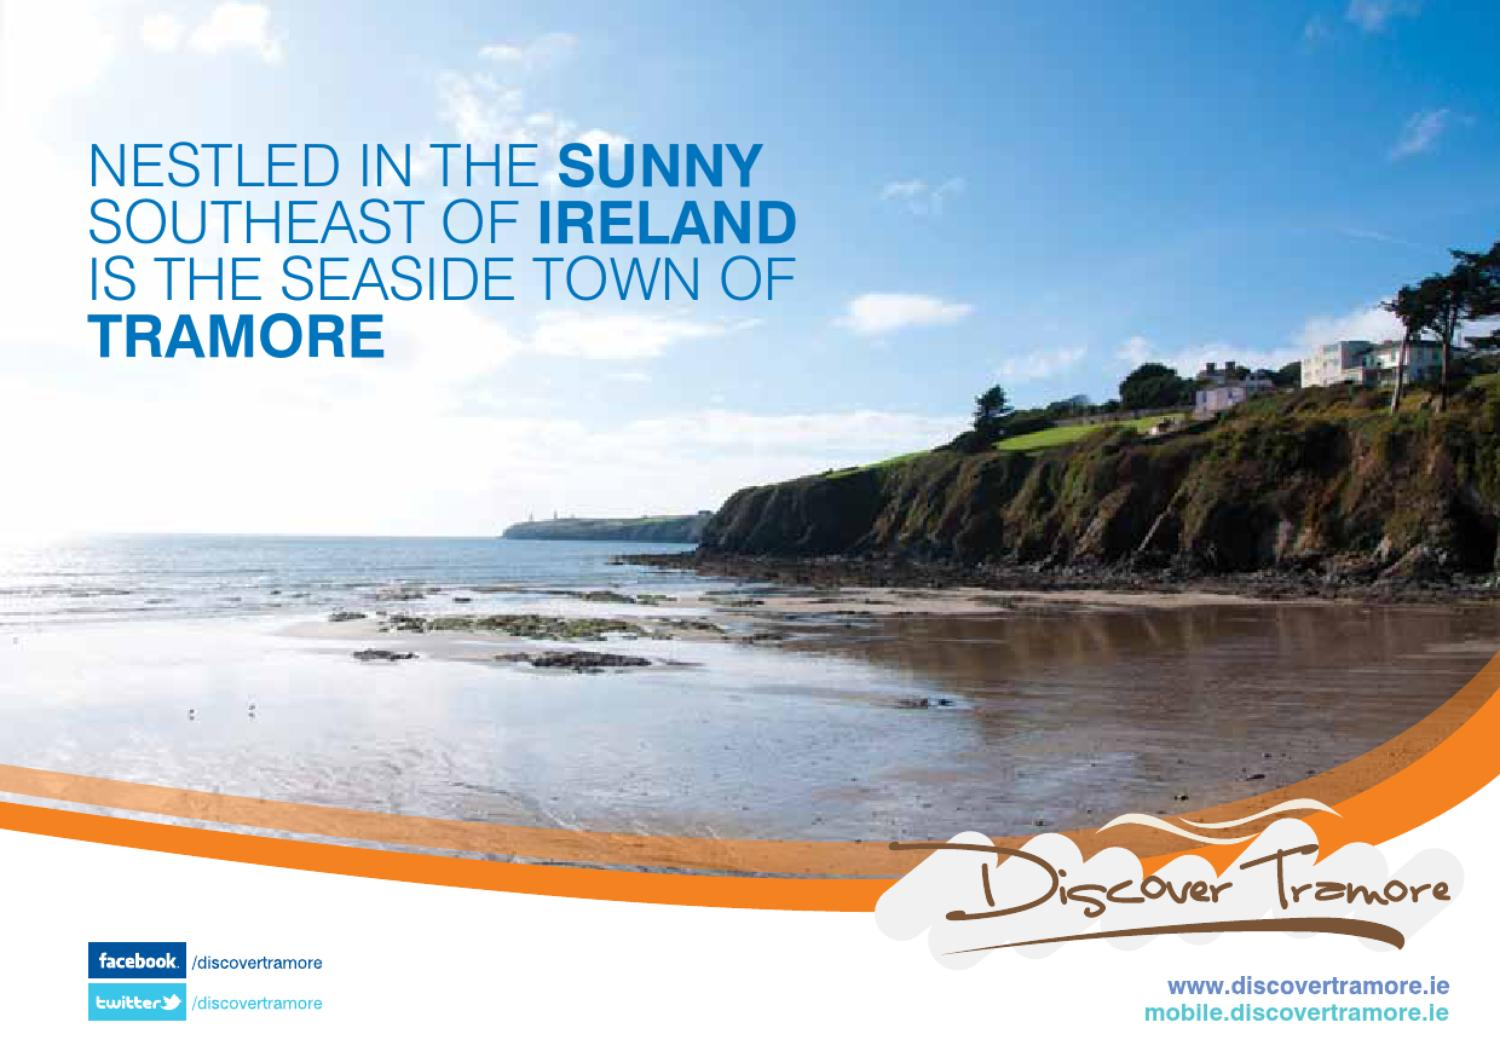 New Ross to Tramore - 3 ways to travel via bus, line 360 bus